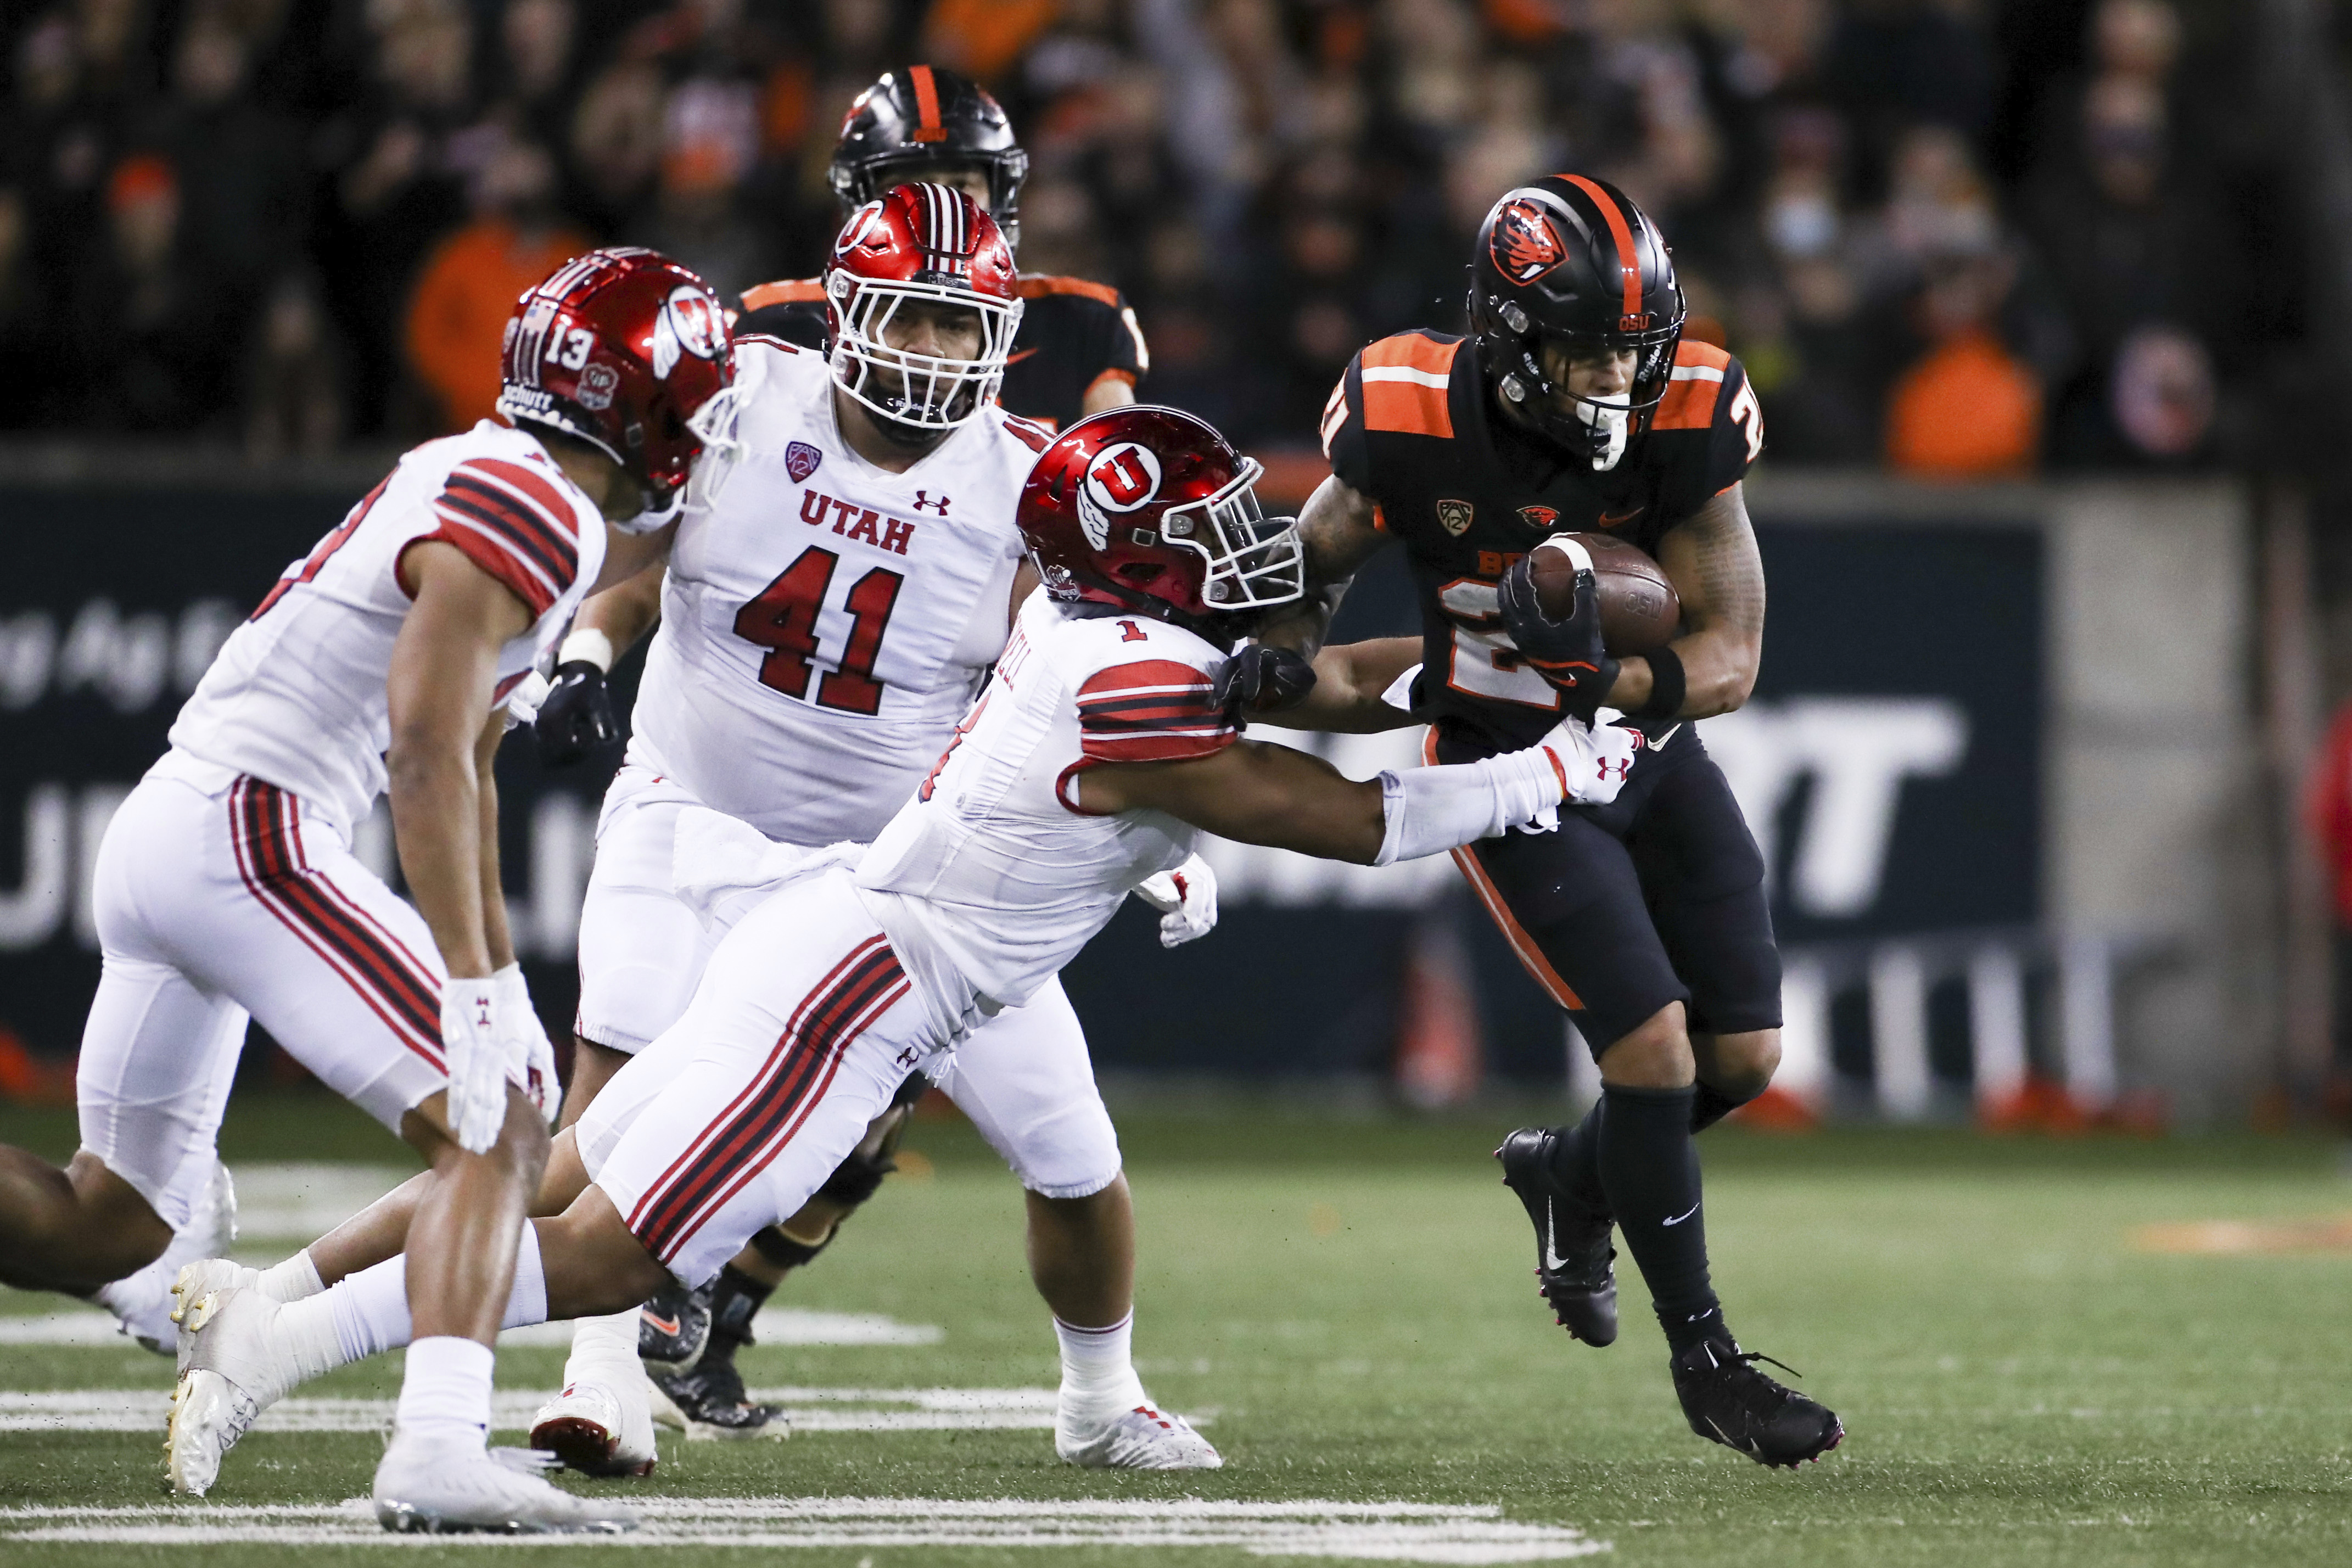 Oregon State running back Trey Lowe, wearing black, is brought down by Utah linebacker Nephi Sewell